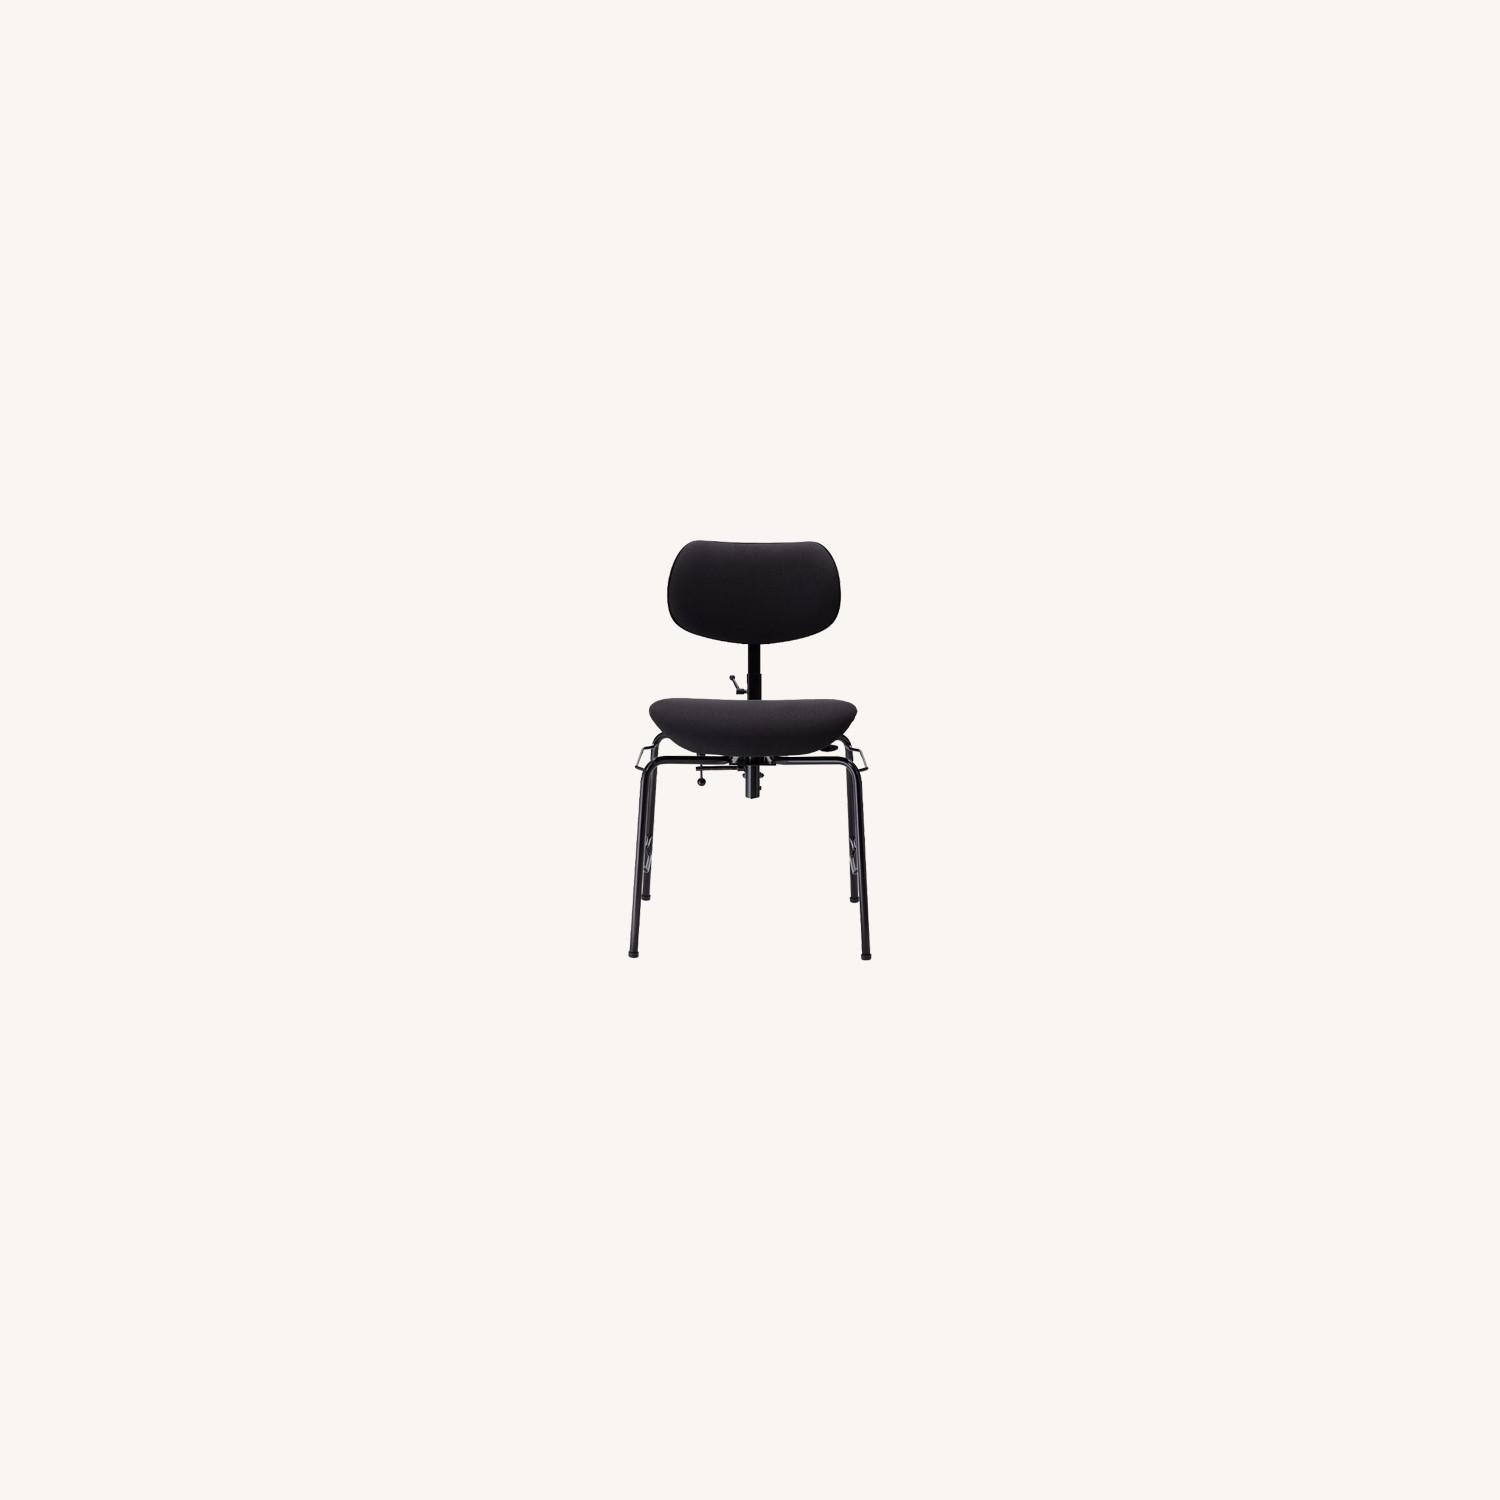 "Wilde + Spieth ""Orchestra"" Chair Black - image-7"